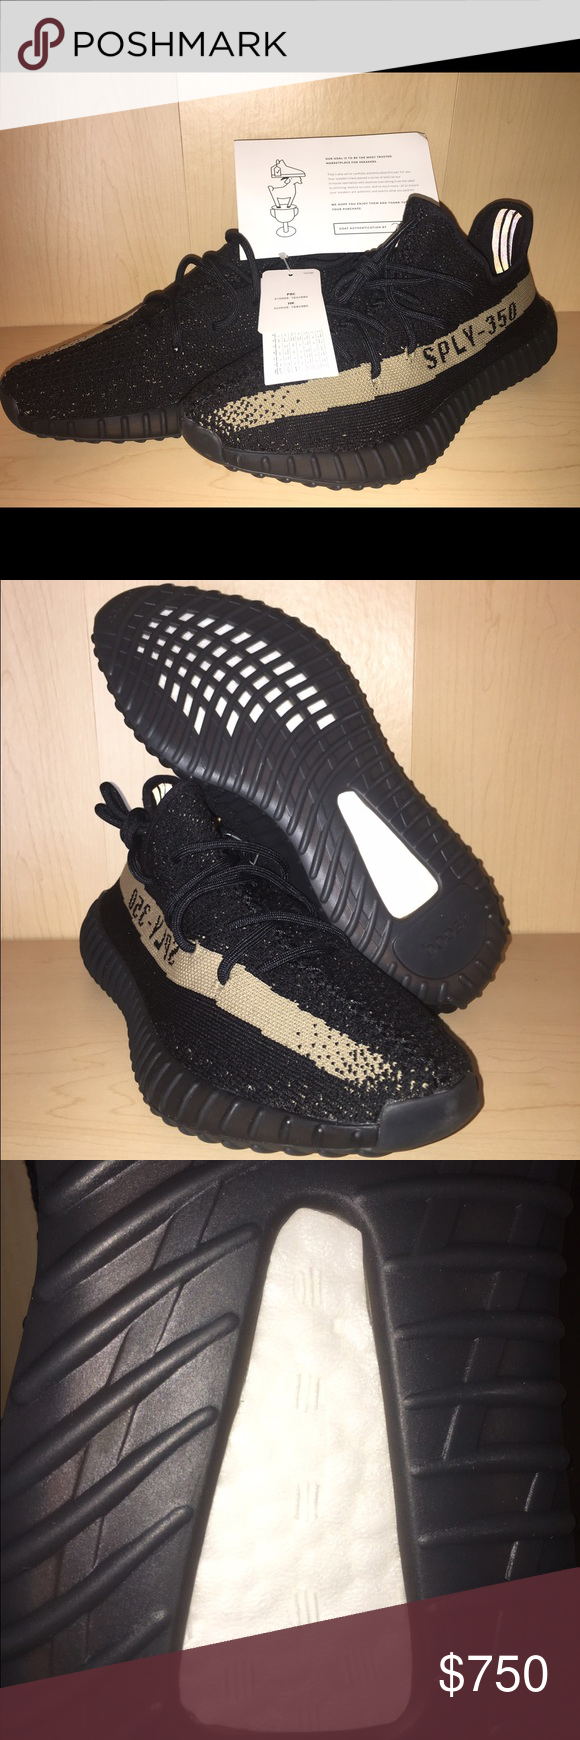 a80dfe88e Yeezy boost 350 v2! Adidas Yeezy boost 350 v2 core black green color wave.  Dead stock with tags! Goat certified! Men s size 10 women s size 12. All ...